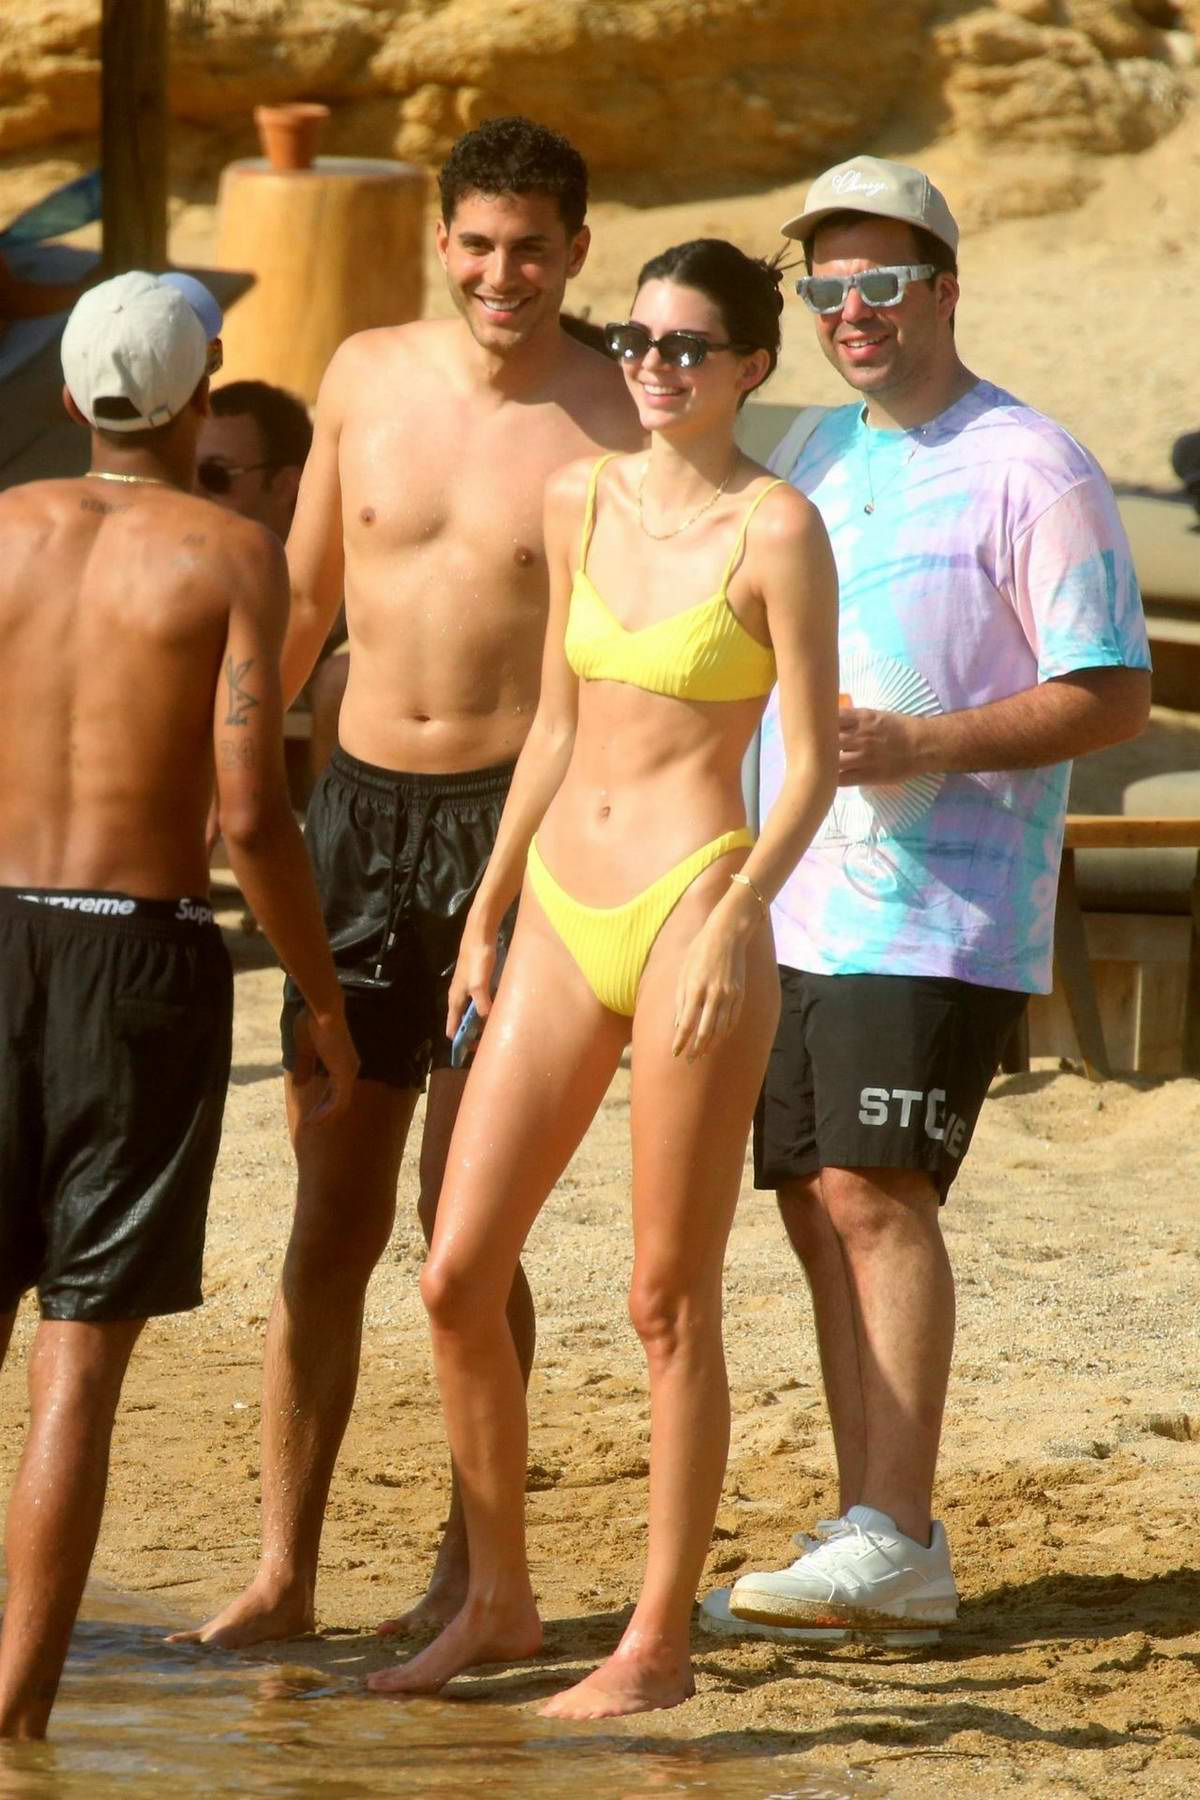 Kendall Jenner rocks a yellow bikini as she hits the beach with a group of friends in Mykonos, Greece